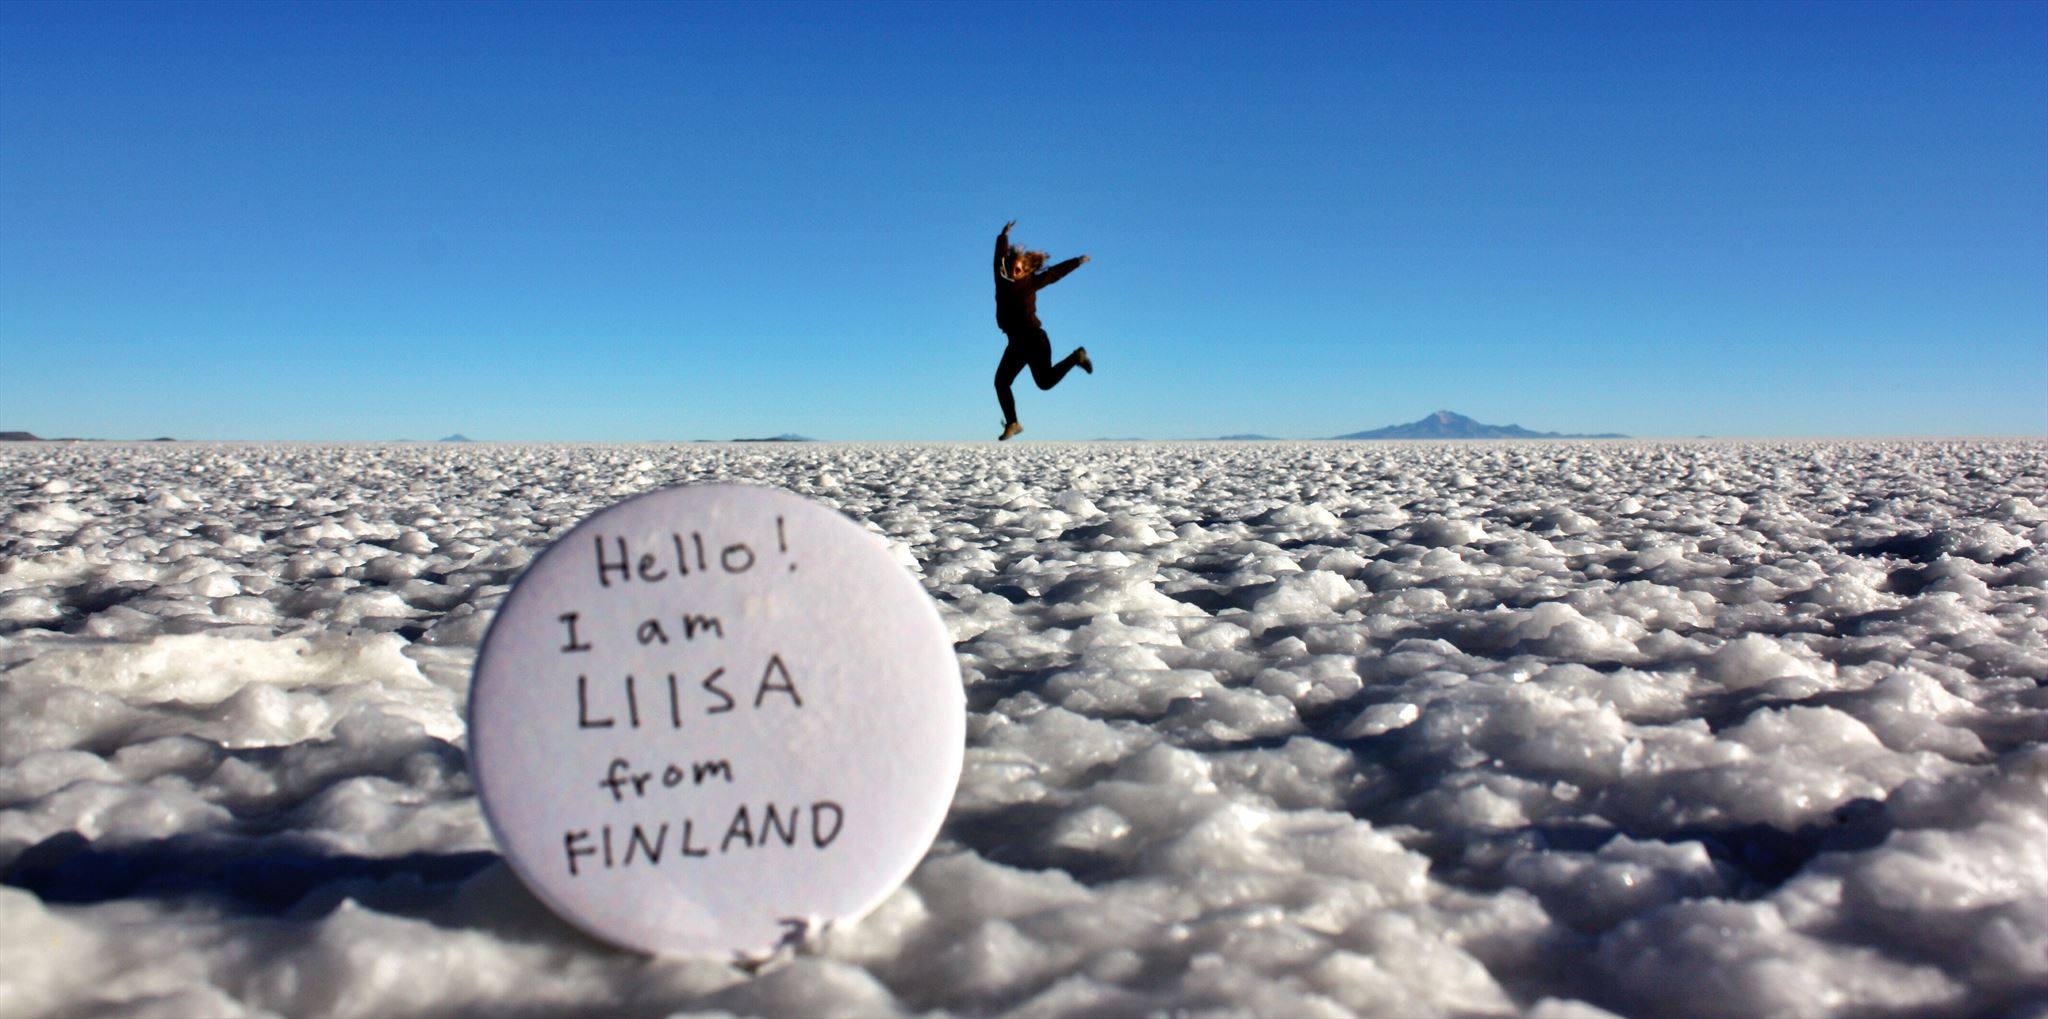 Liisa from Finland